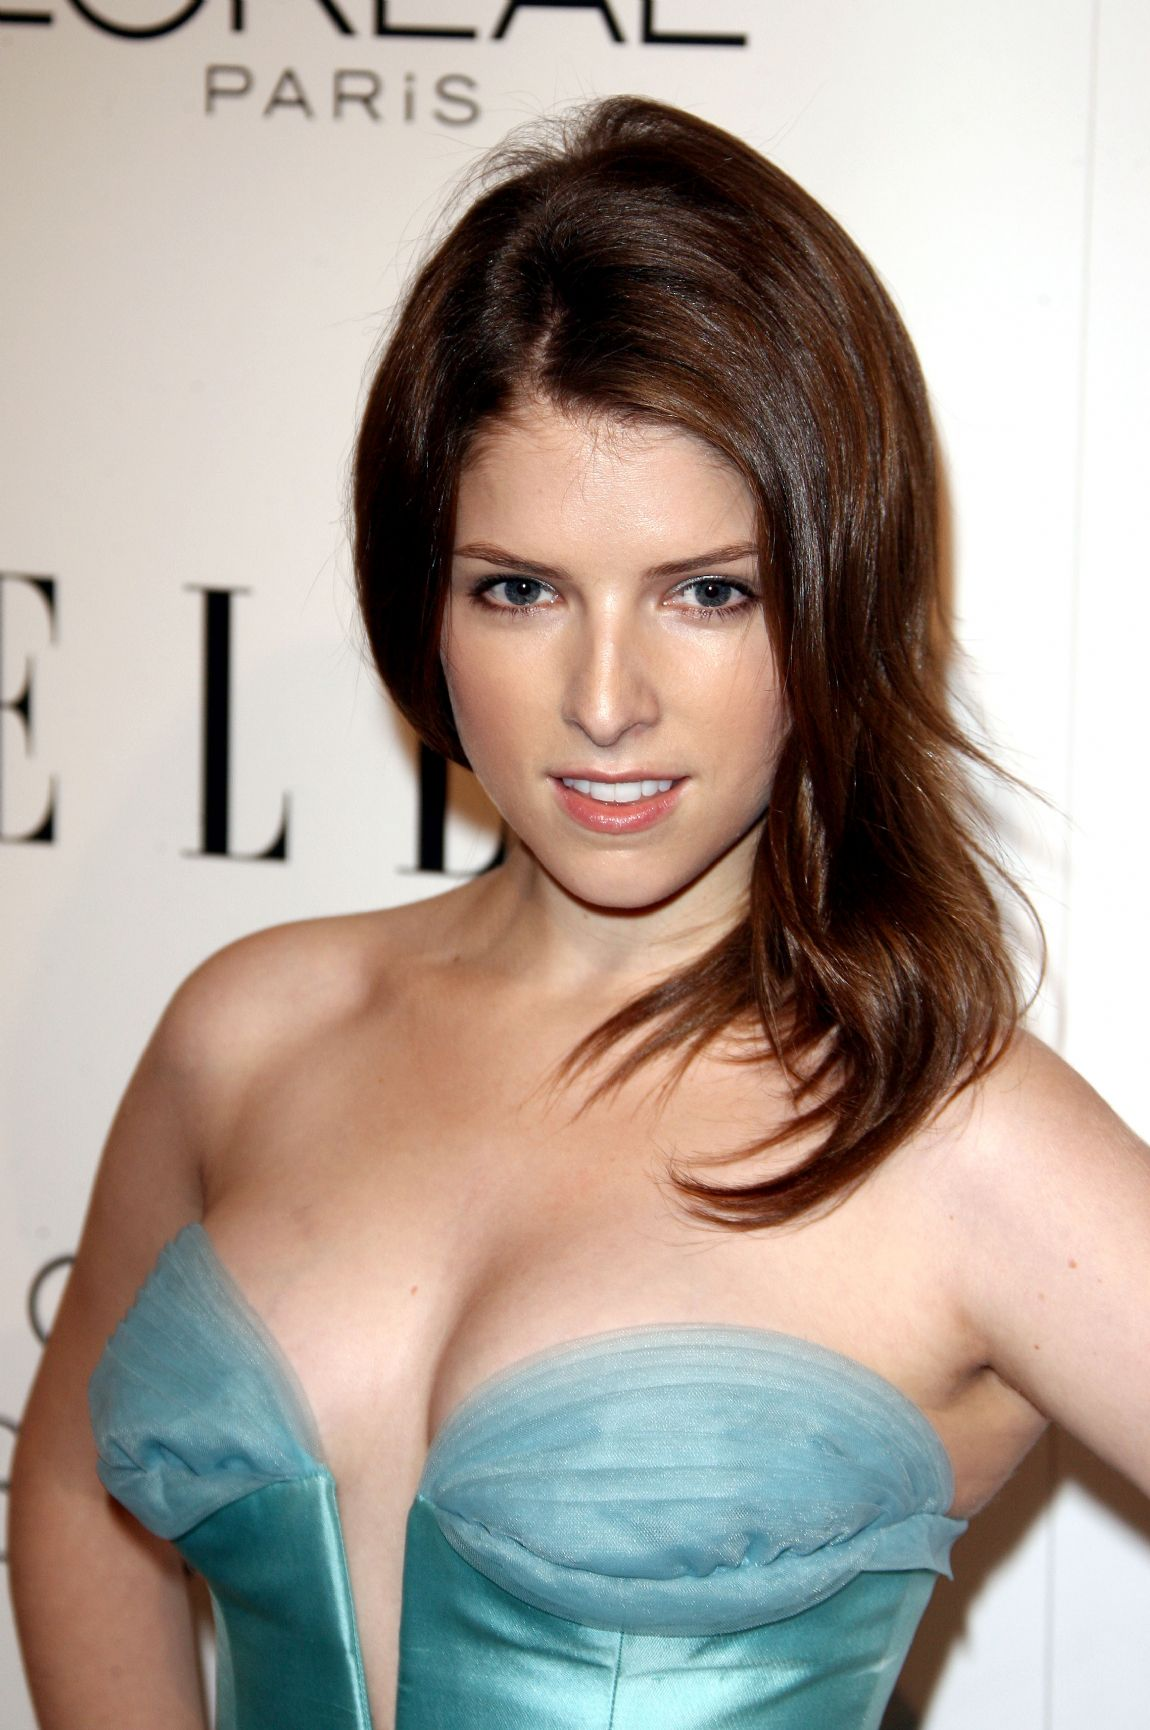 anna-kendrick-sexy-photos-in-bikini